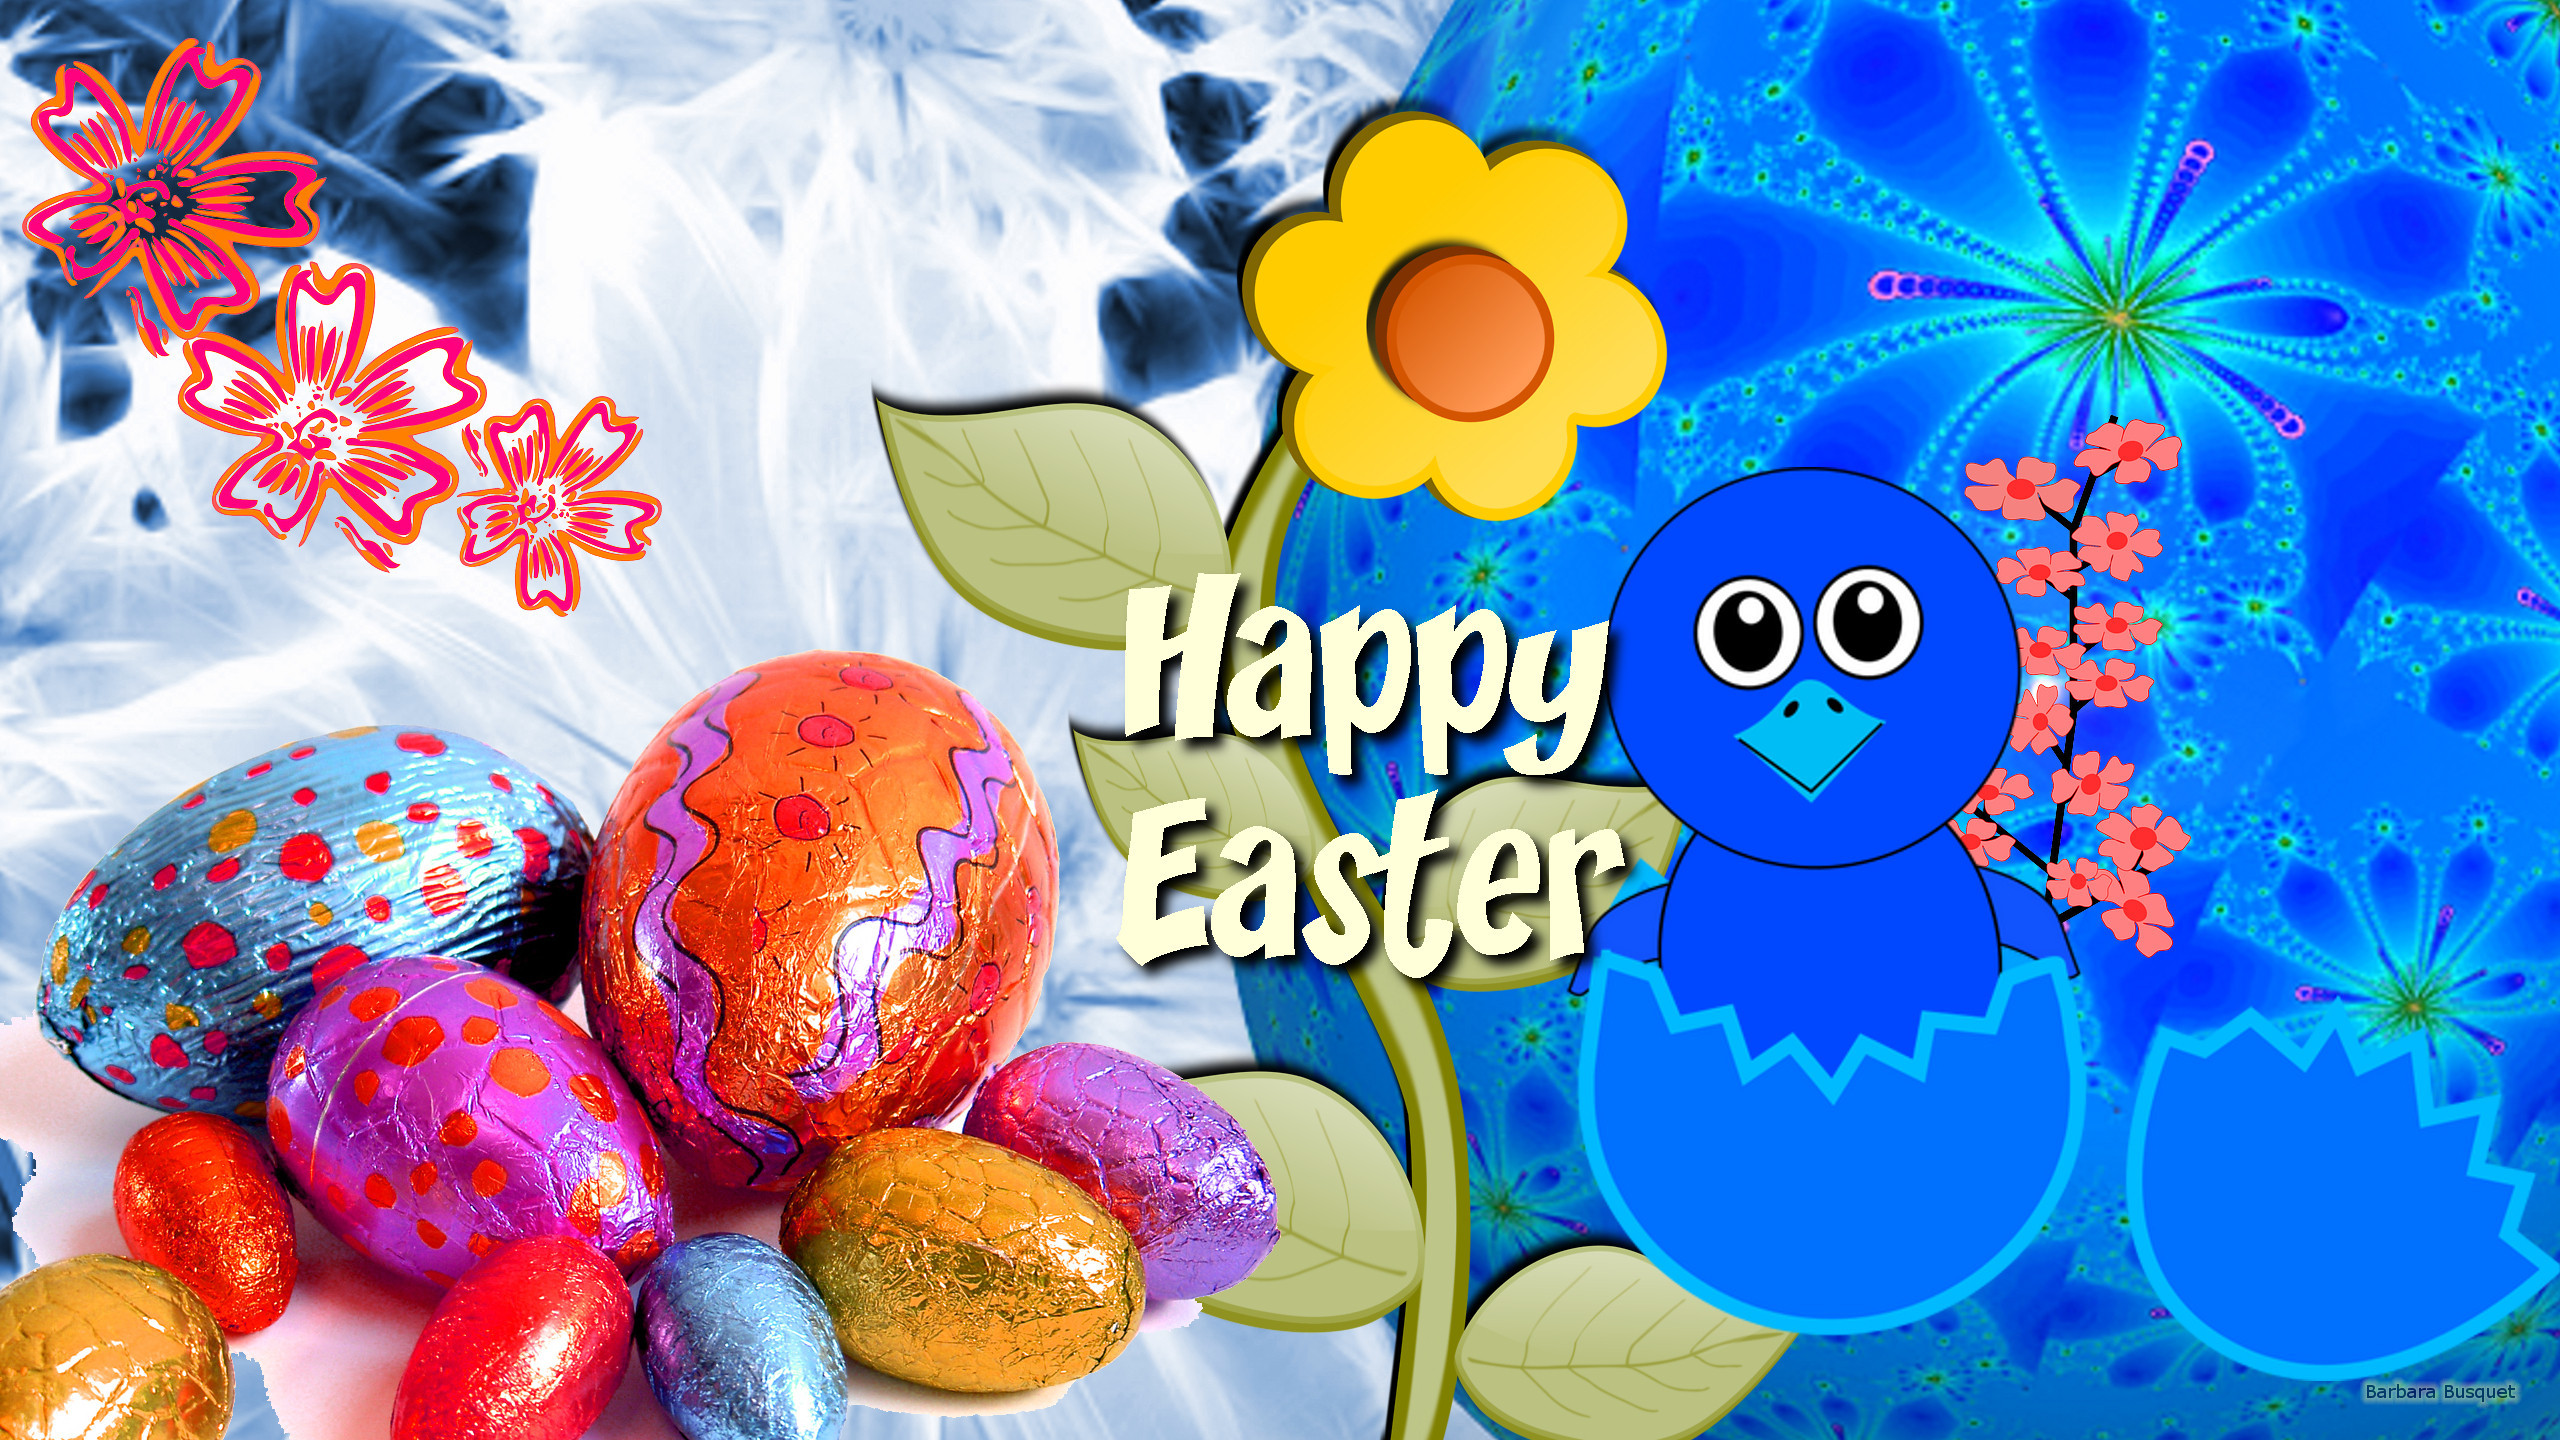 2560x1440 Easter wallpaper with text and eggs.